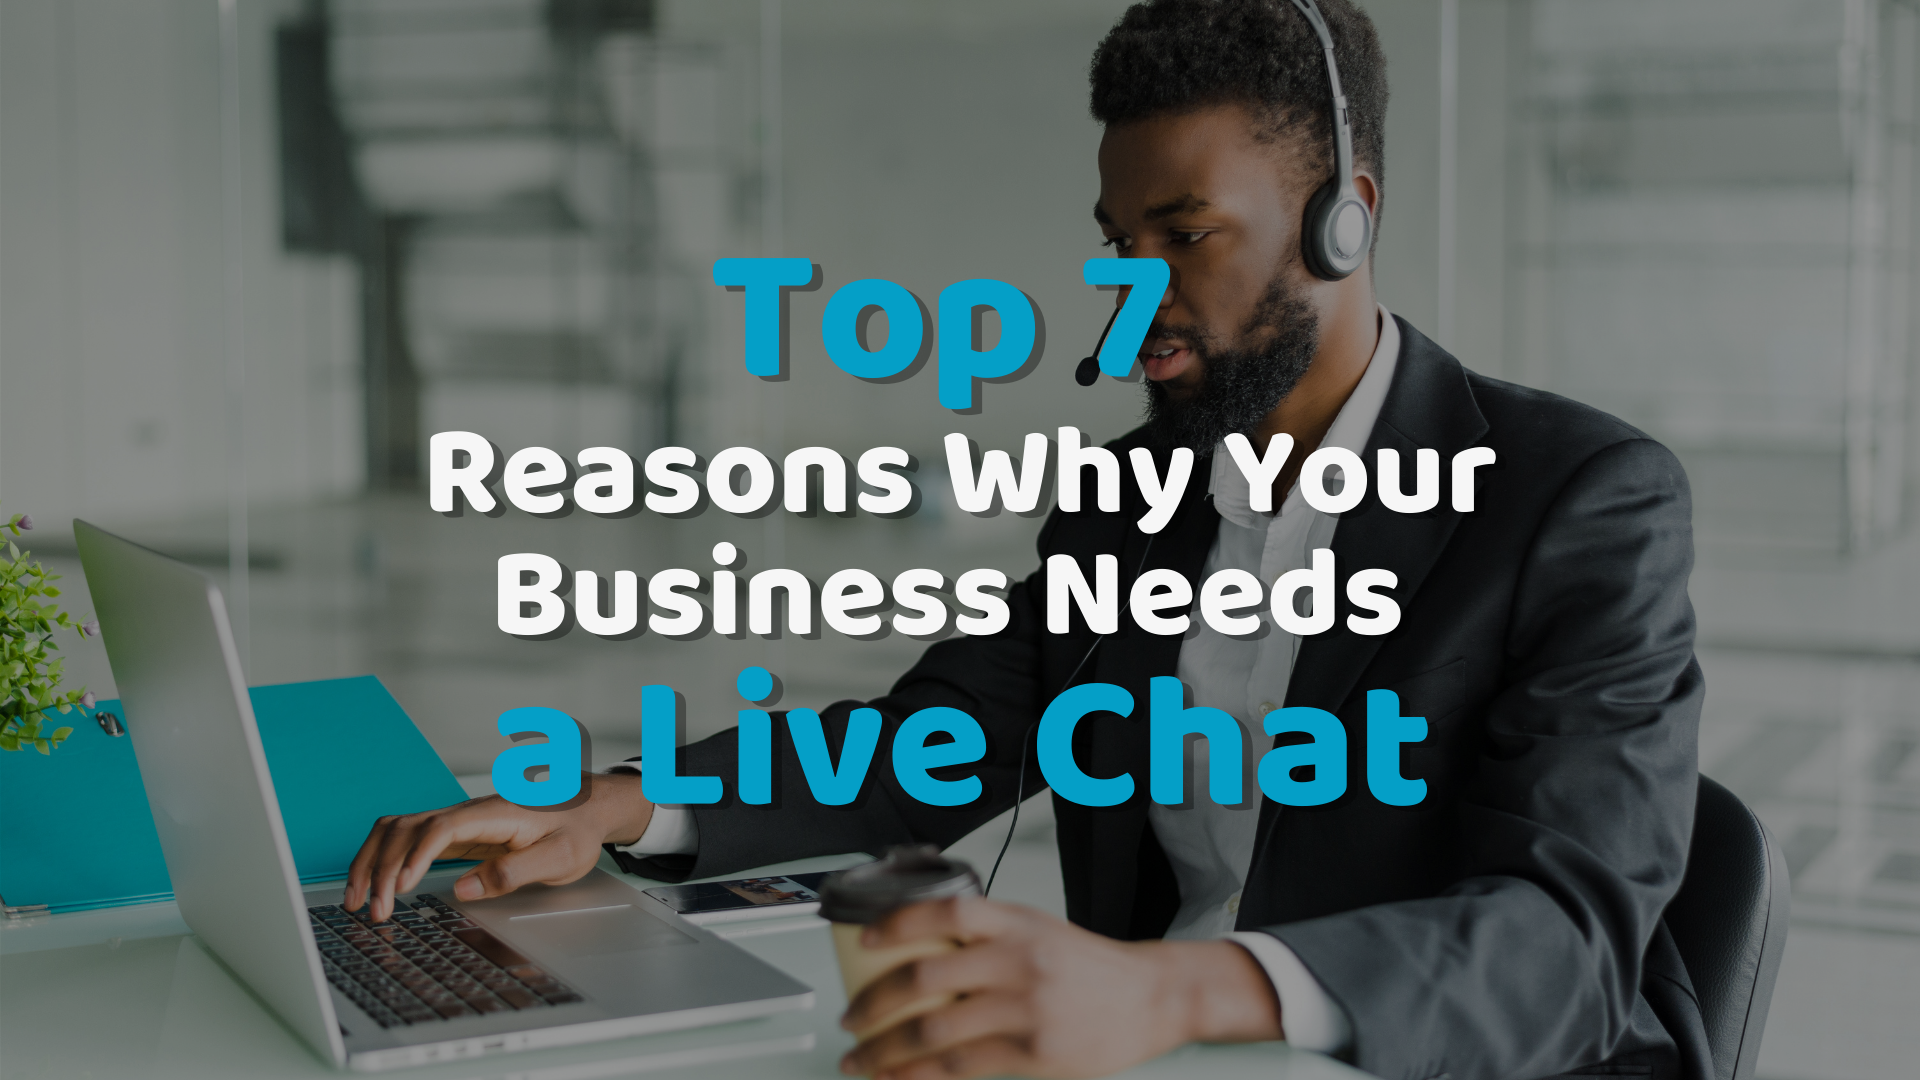 Top 7 reasons why your business needs a LiveChat in 2021 (Update)